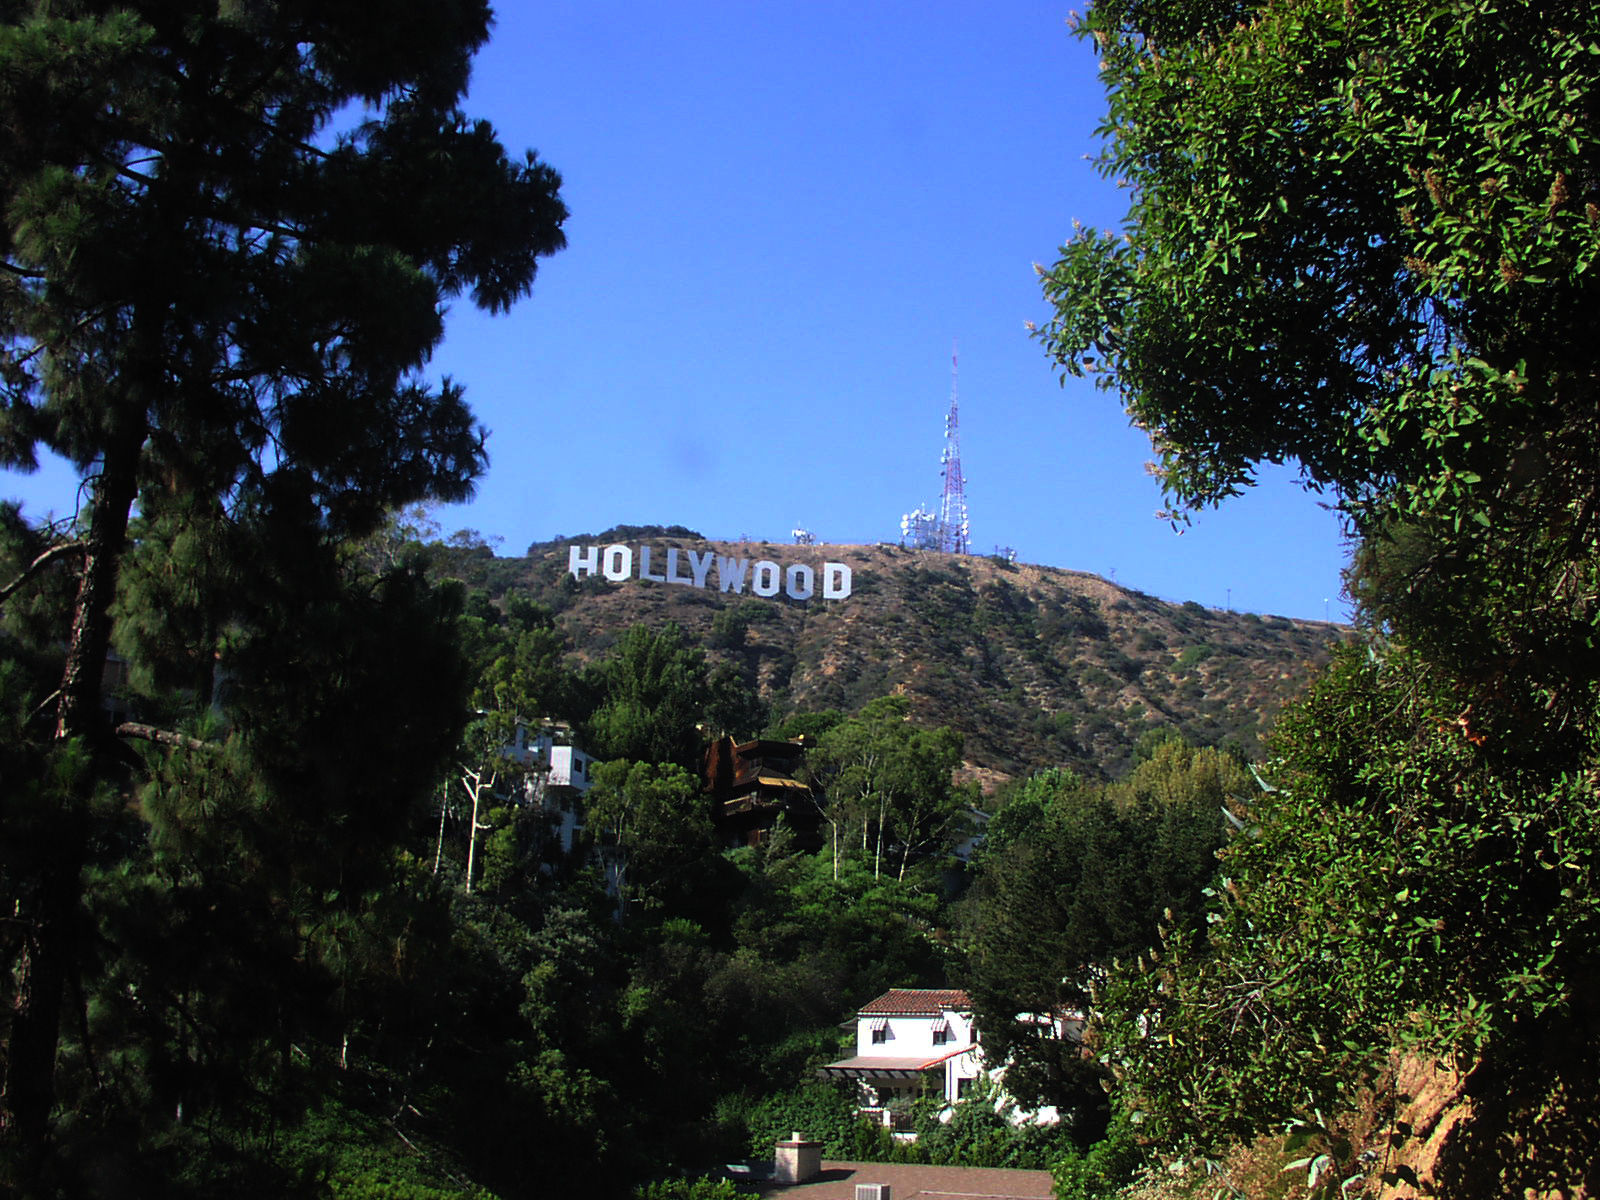 Hollywood Hills Wallpaper Hollywood hills by della stock 1600x1200